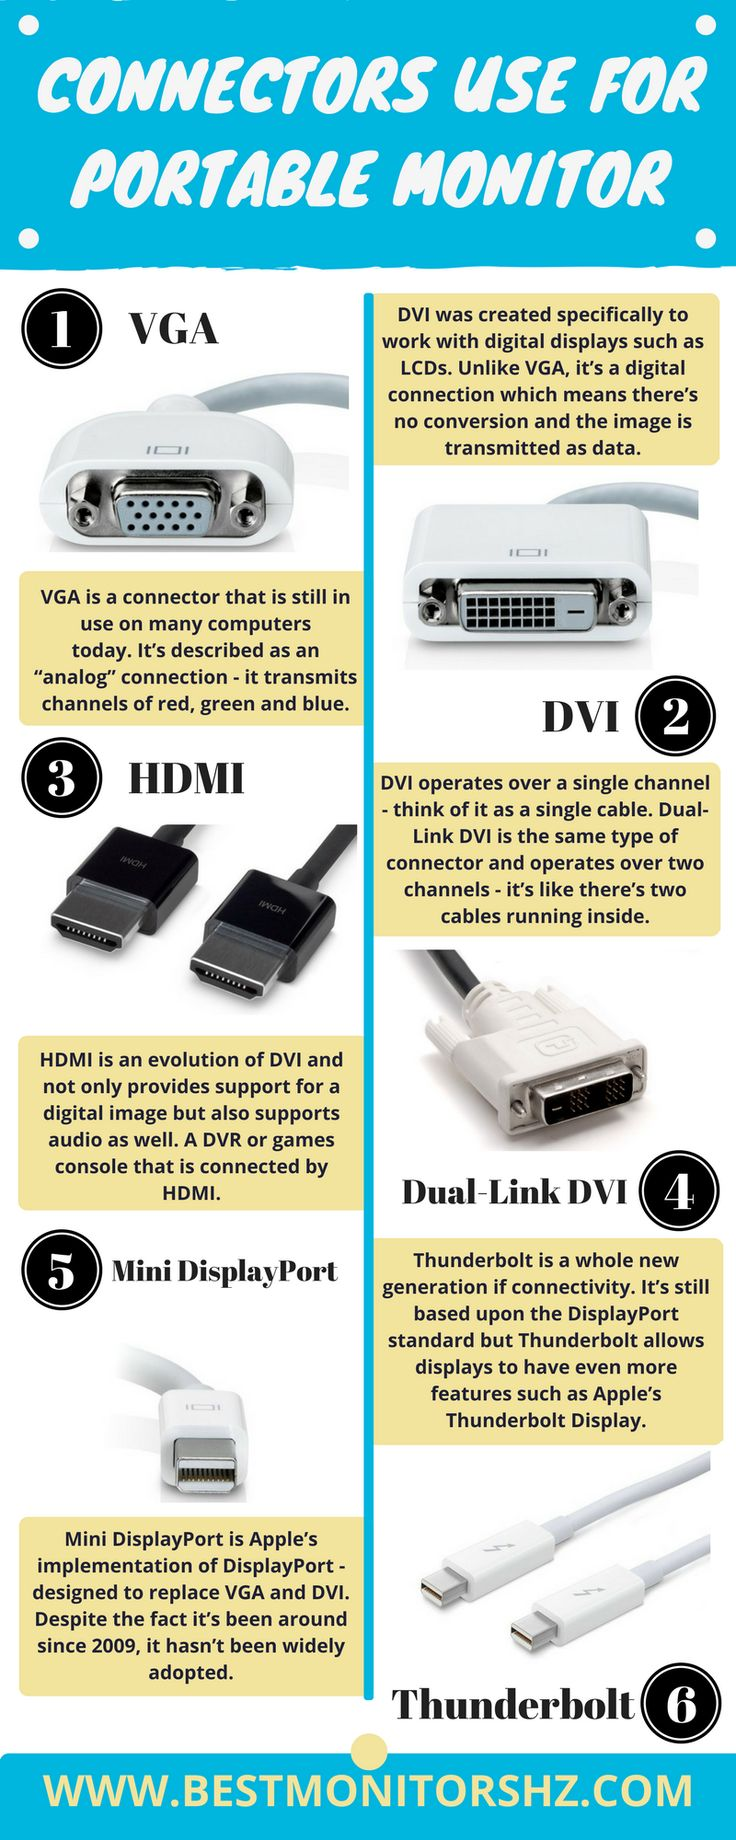 There are many different types of #connectors used for displays and all of them are use today on a portable monitor. In this Infographic, I have listed six types of connectors use for the portable #monitor. https://www.bestmonitorshz.com/top-best-portable-usb-powered-monitors/